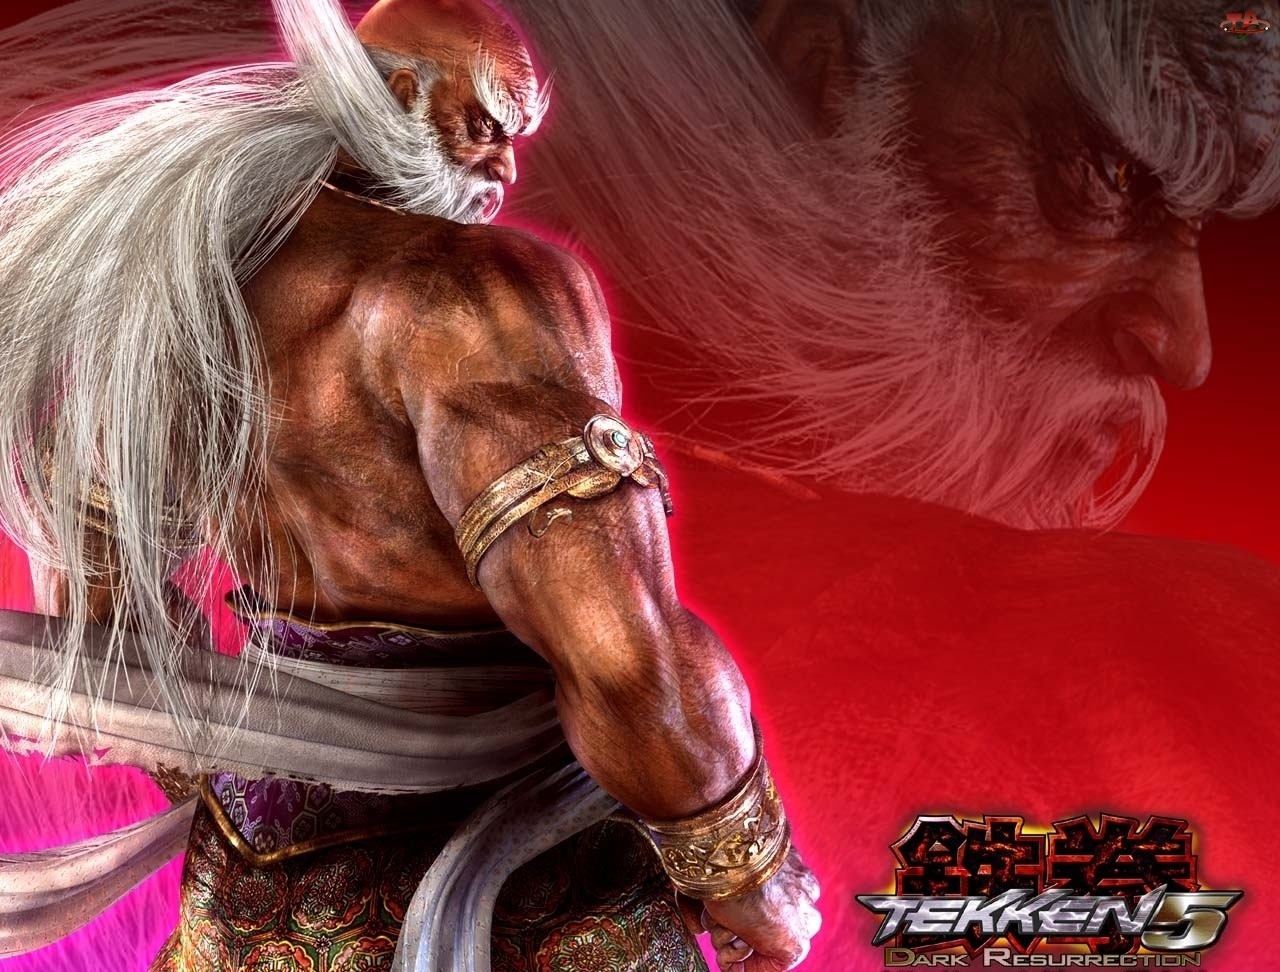 Jimpanchi, Tekken 5 Dark Ressurection